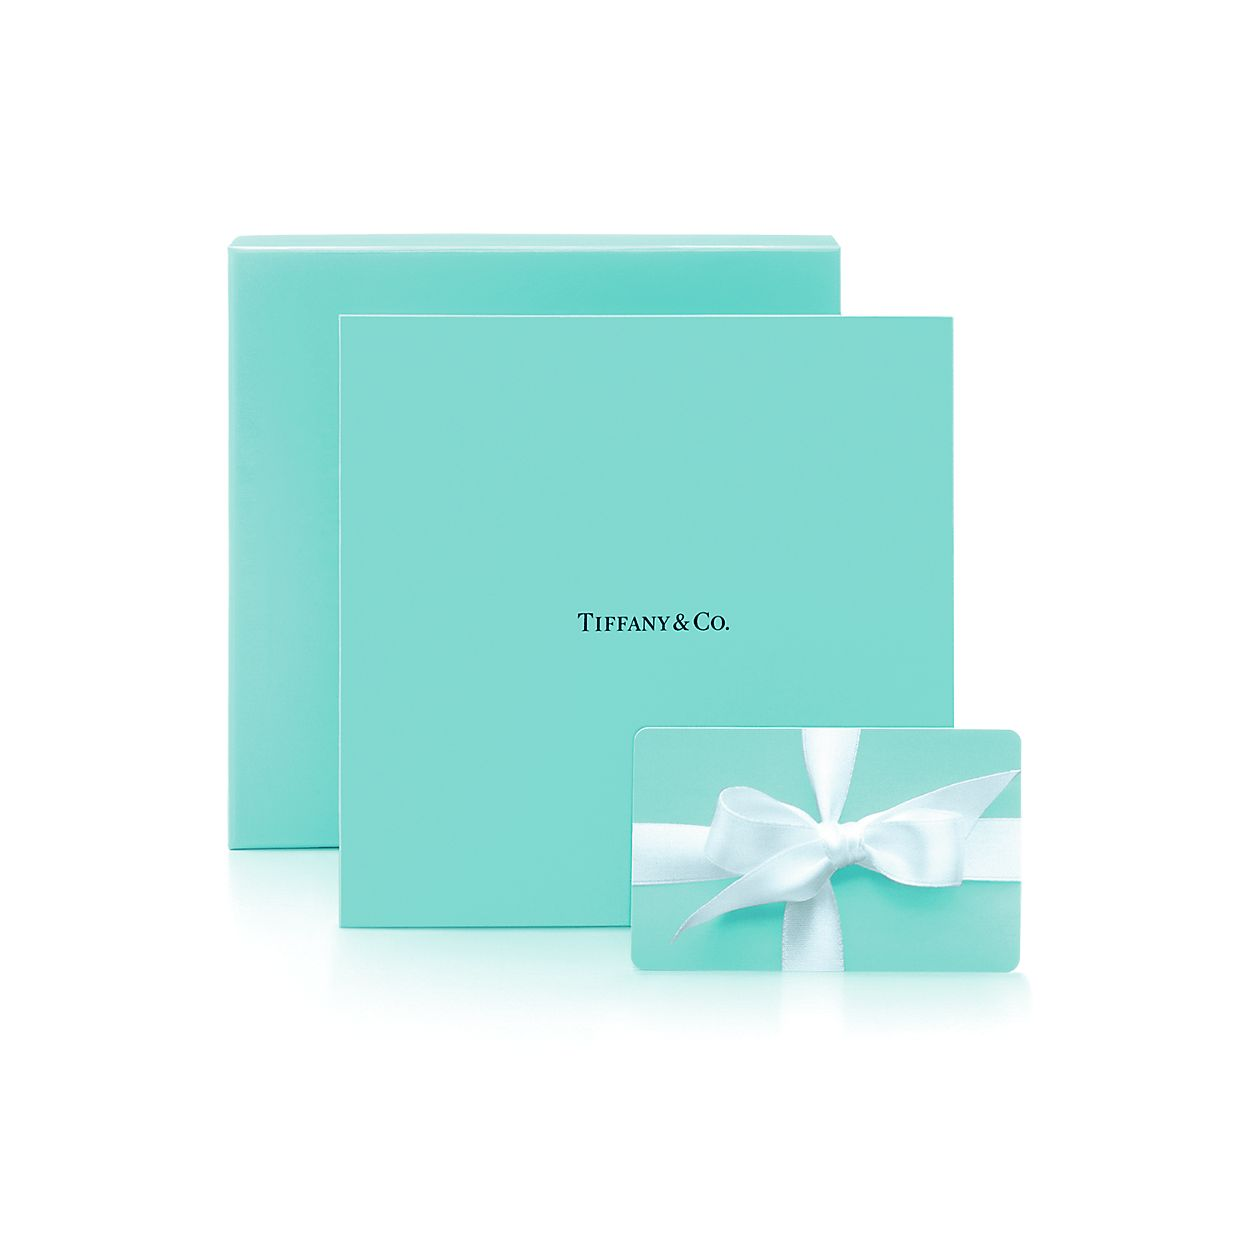 $50 Tiffany Gift Card. | Tiffany & Co.